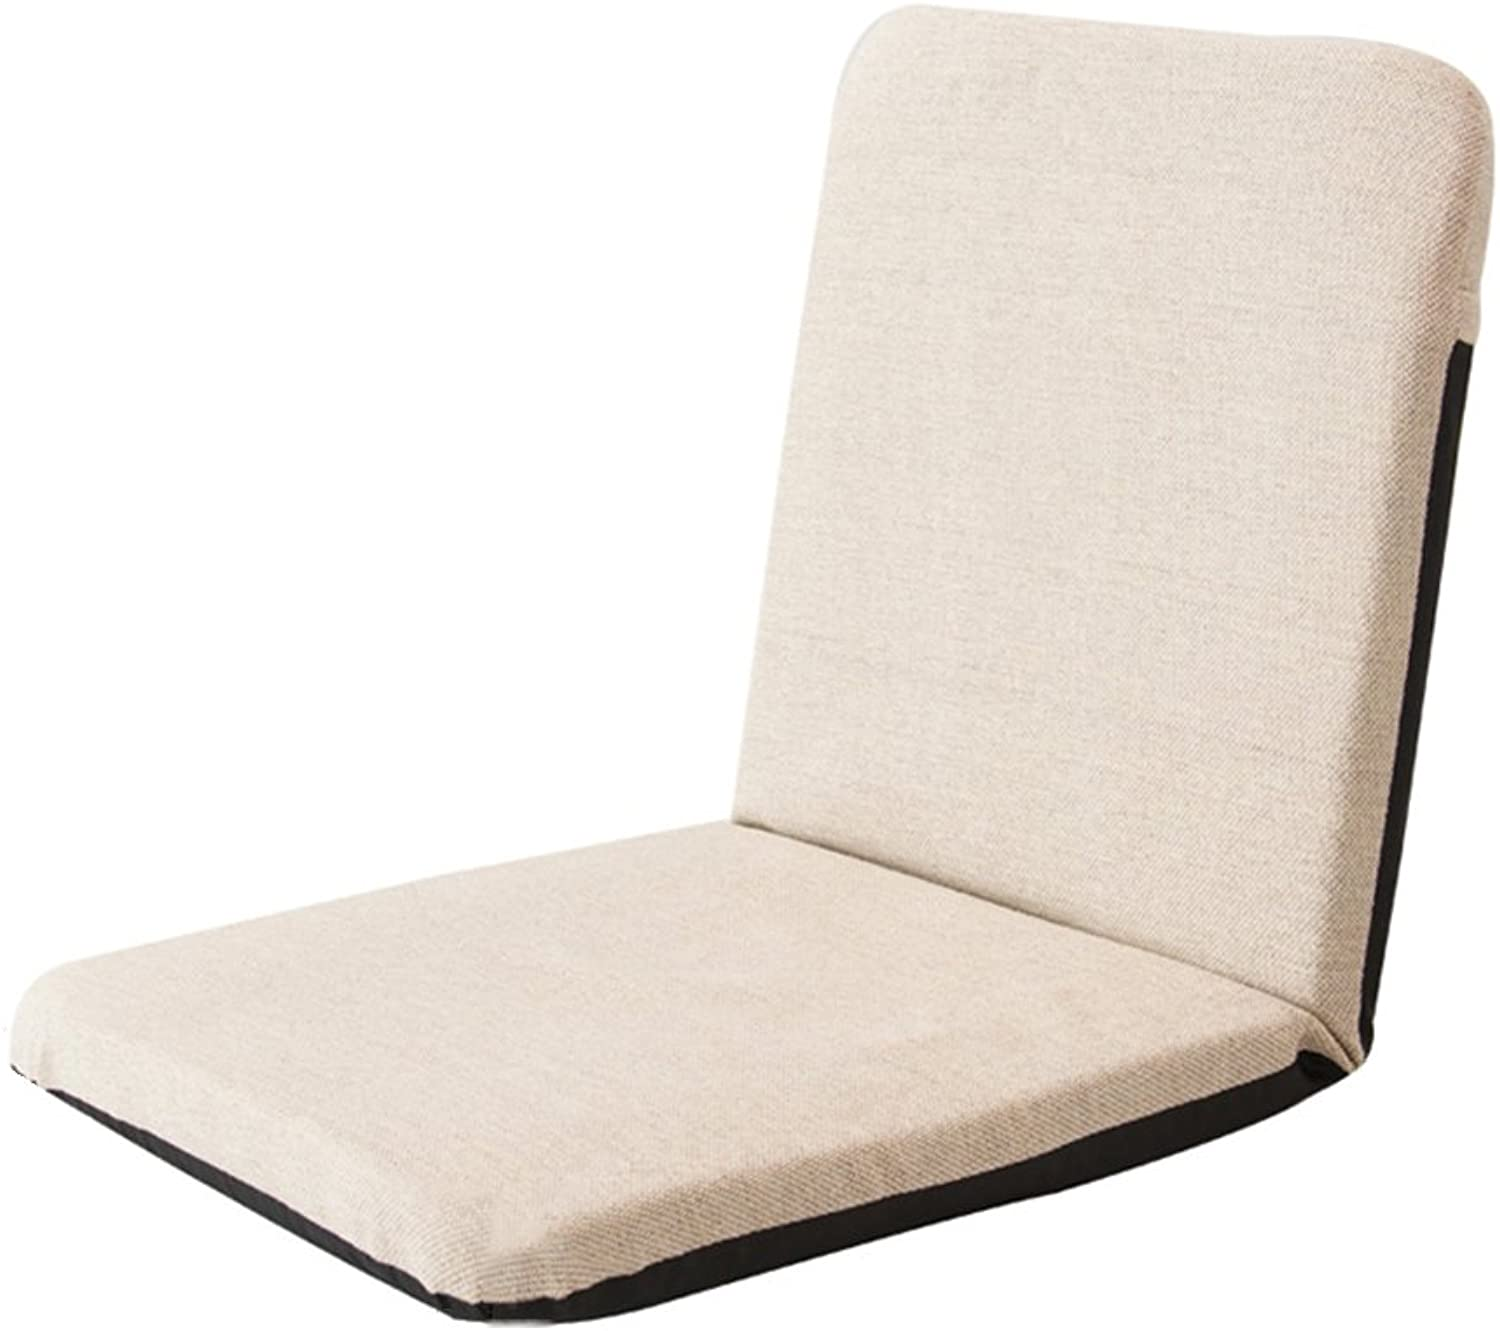 LVZAIXI Lazy Couch Lazy Couch, Bedroom Couch, Modern Minimalist, Single Sofa (color   Beige)